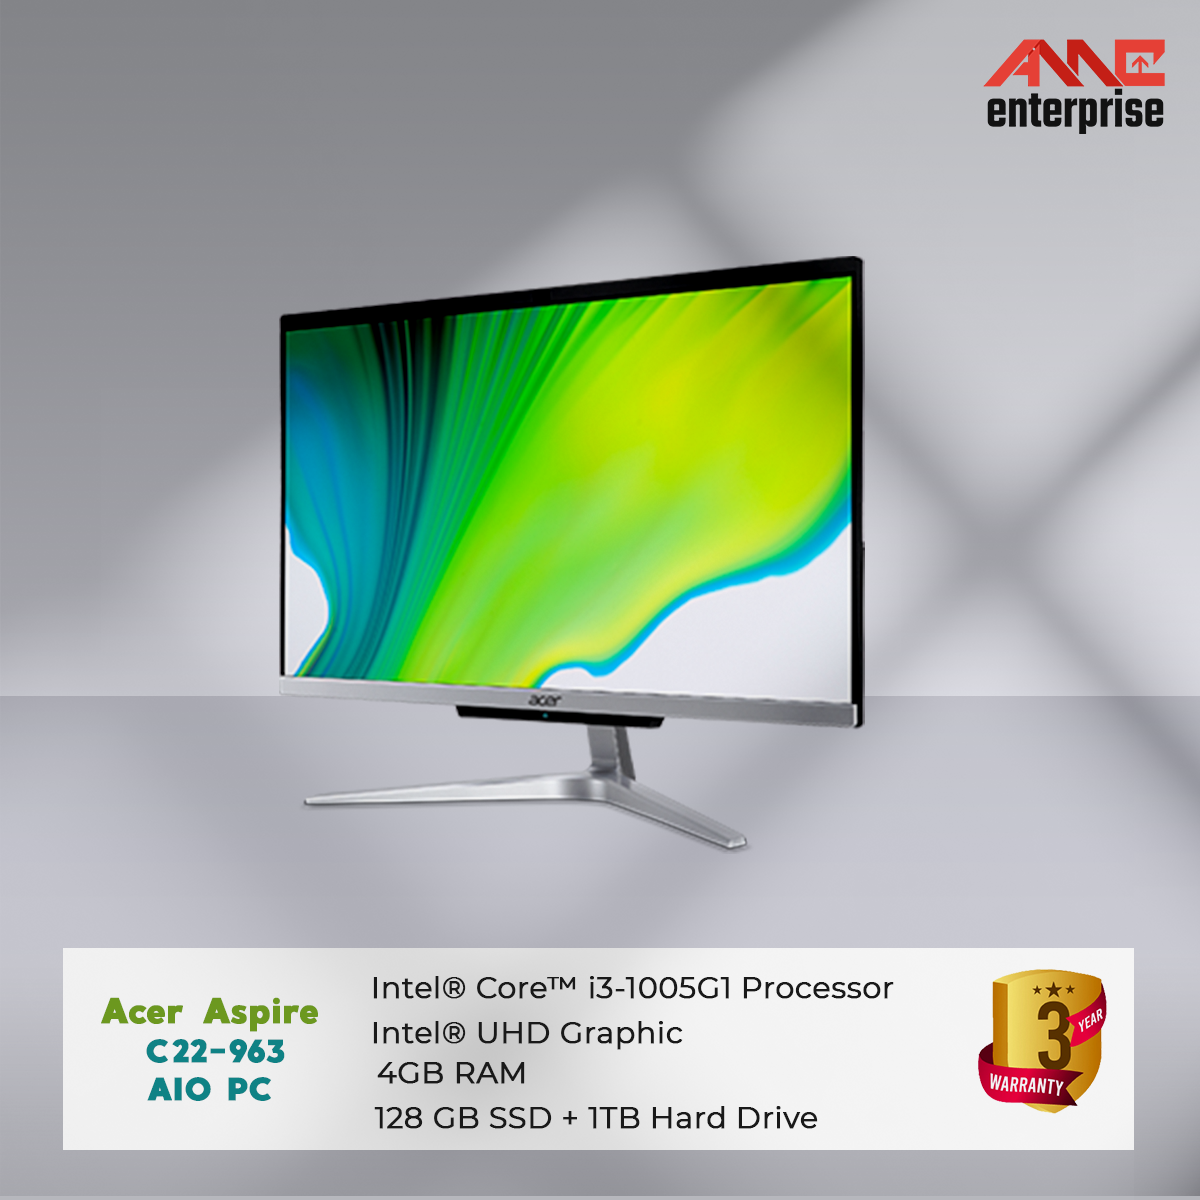 ACER Aspire C22-963 ALL-IN-ONE PC (4).png